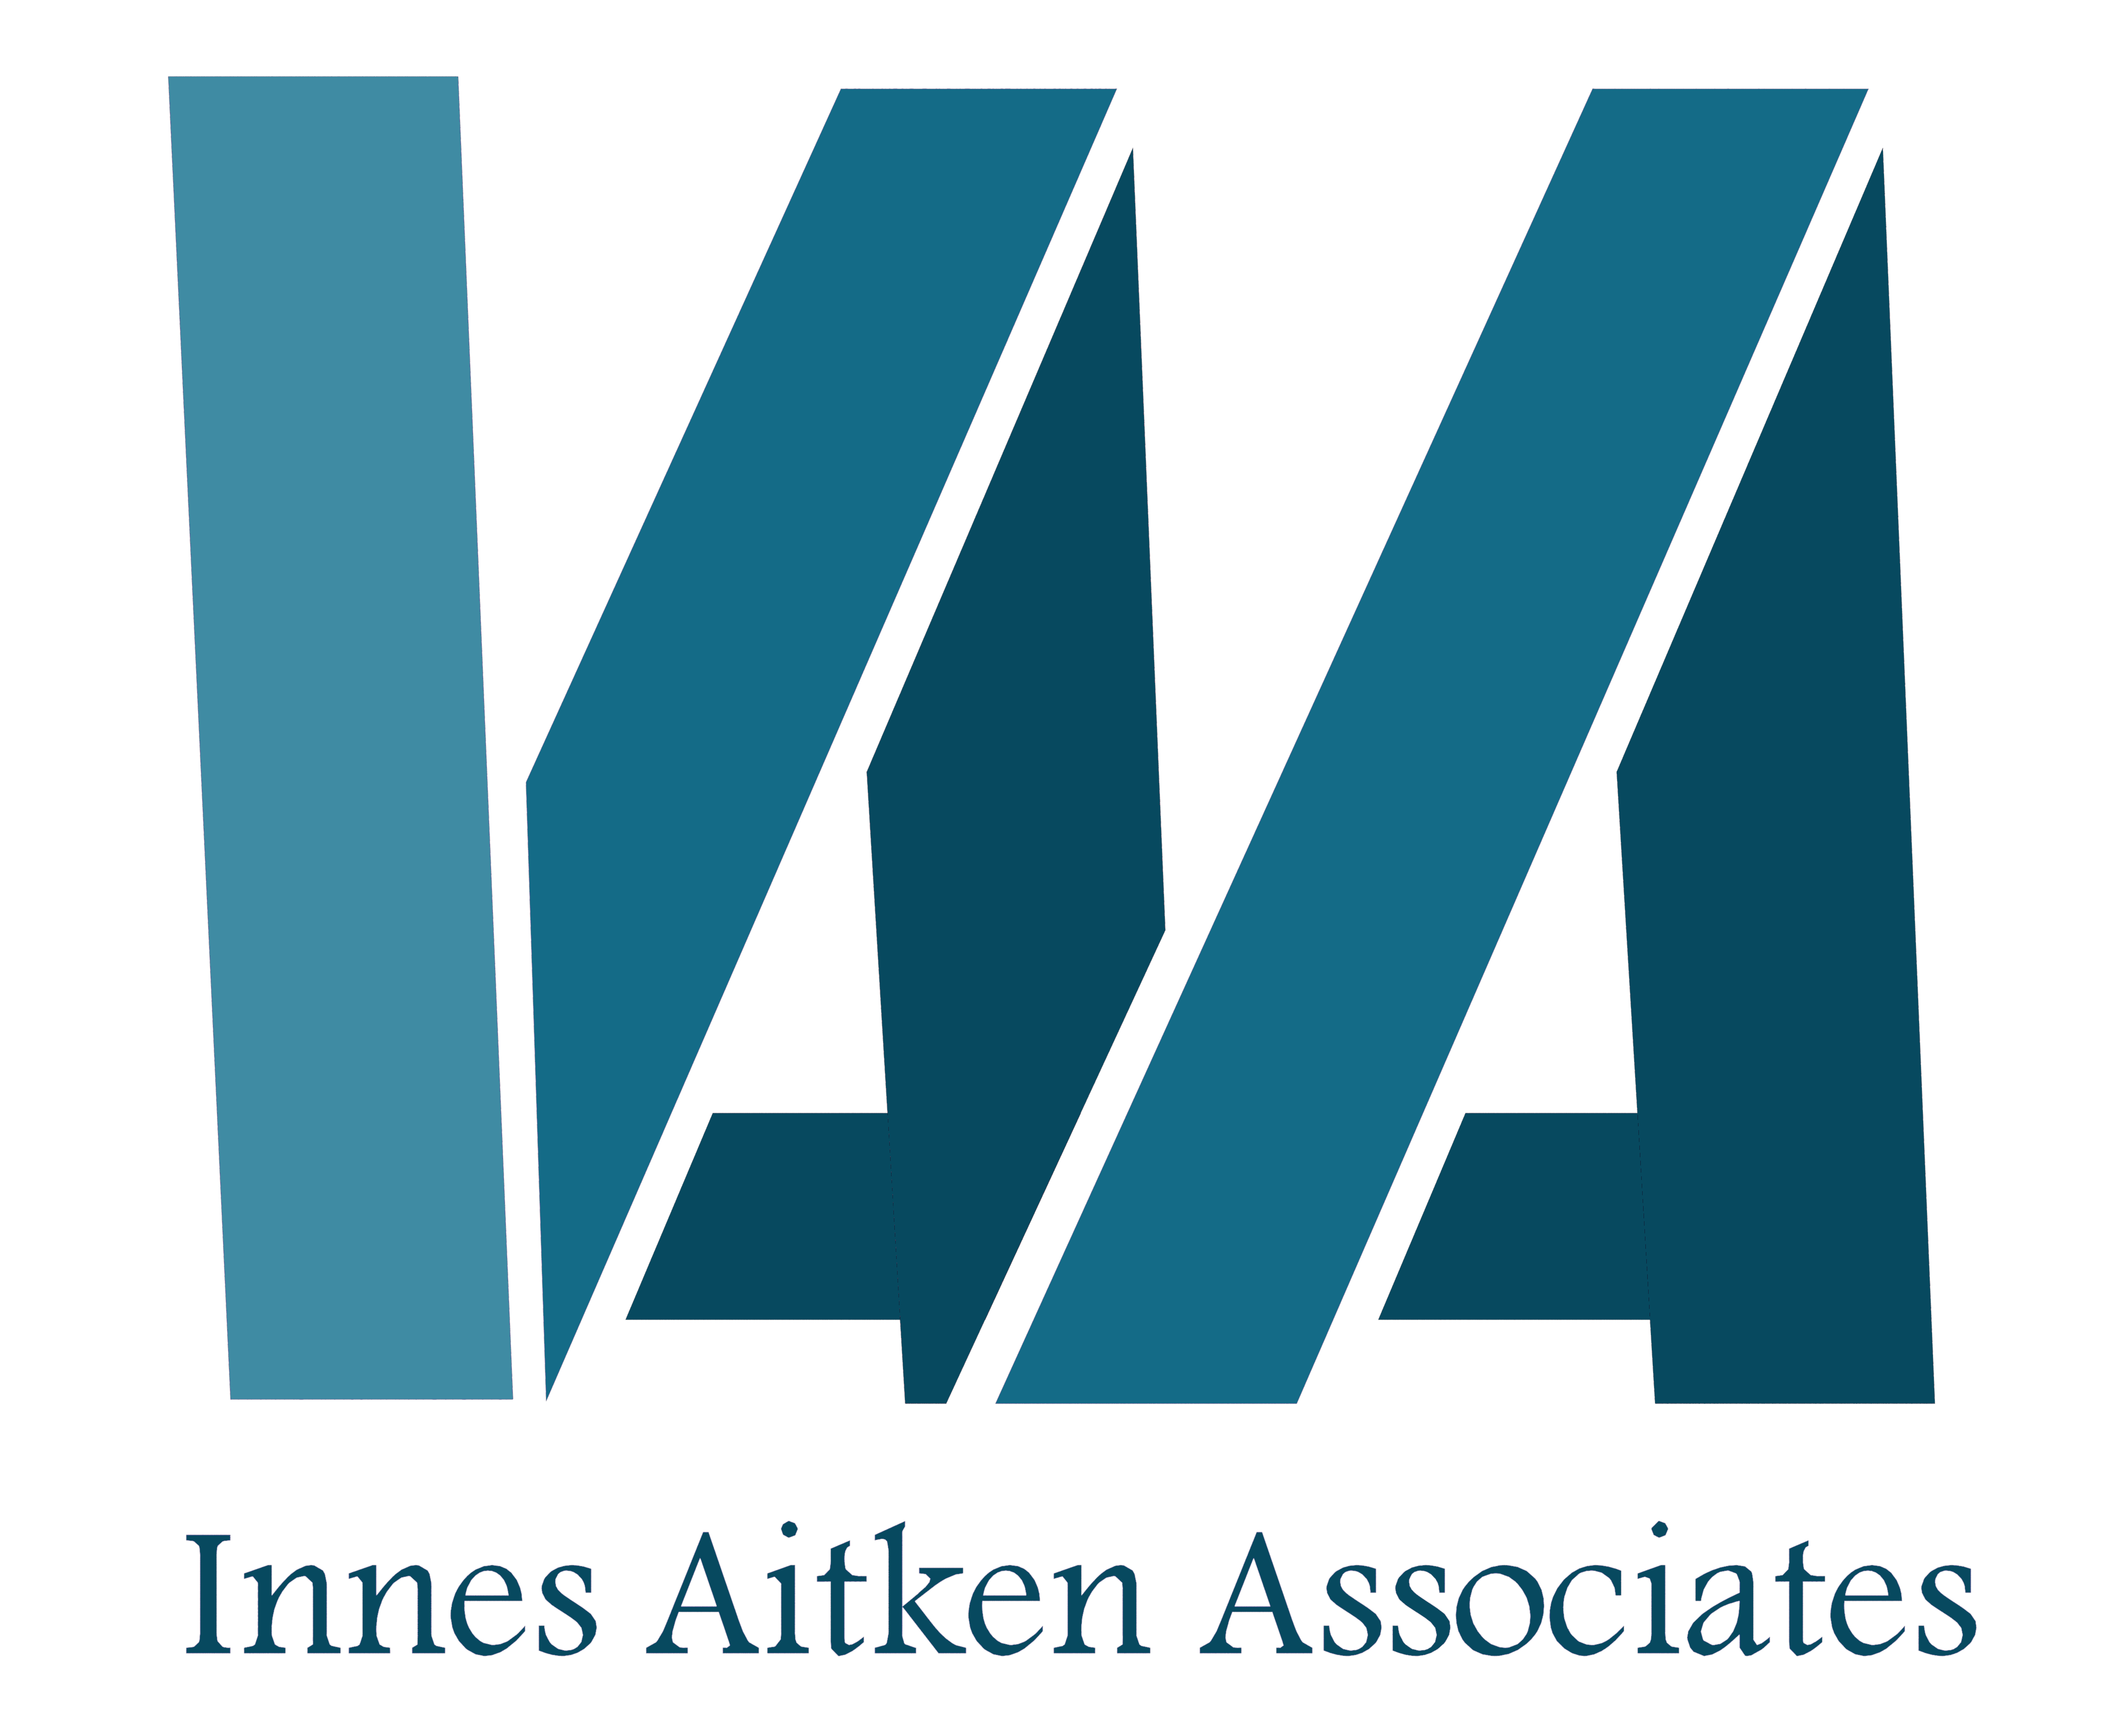 Logo of Innes Aitken Associates